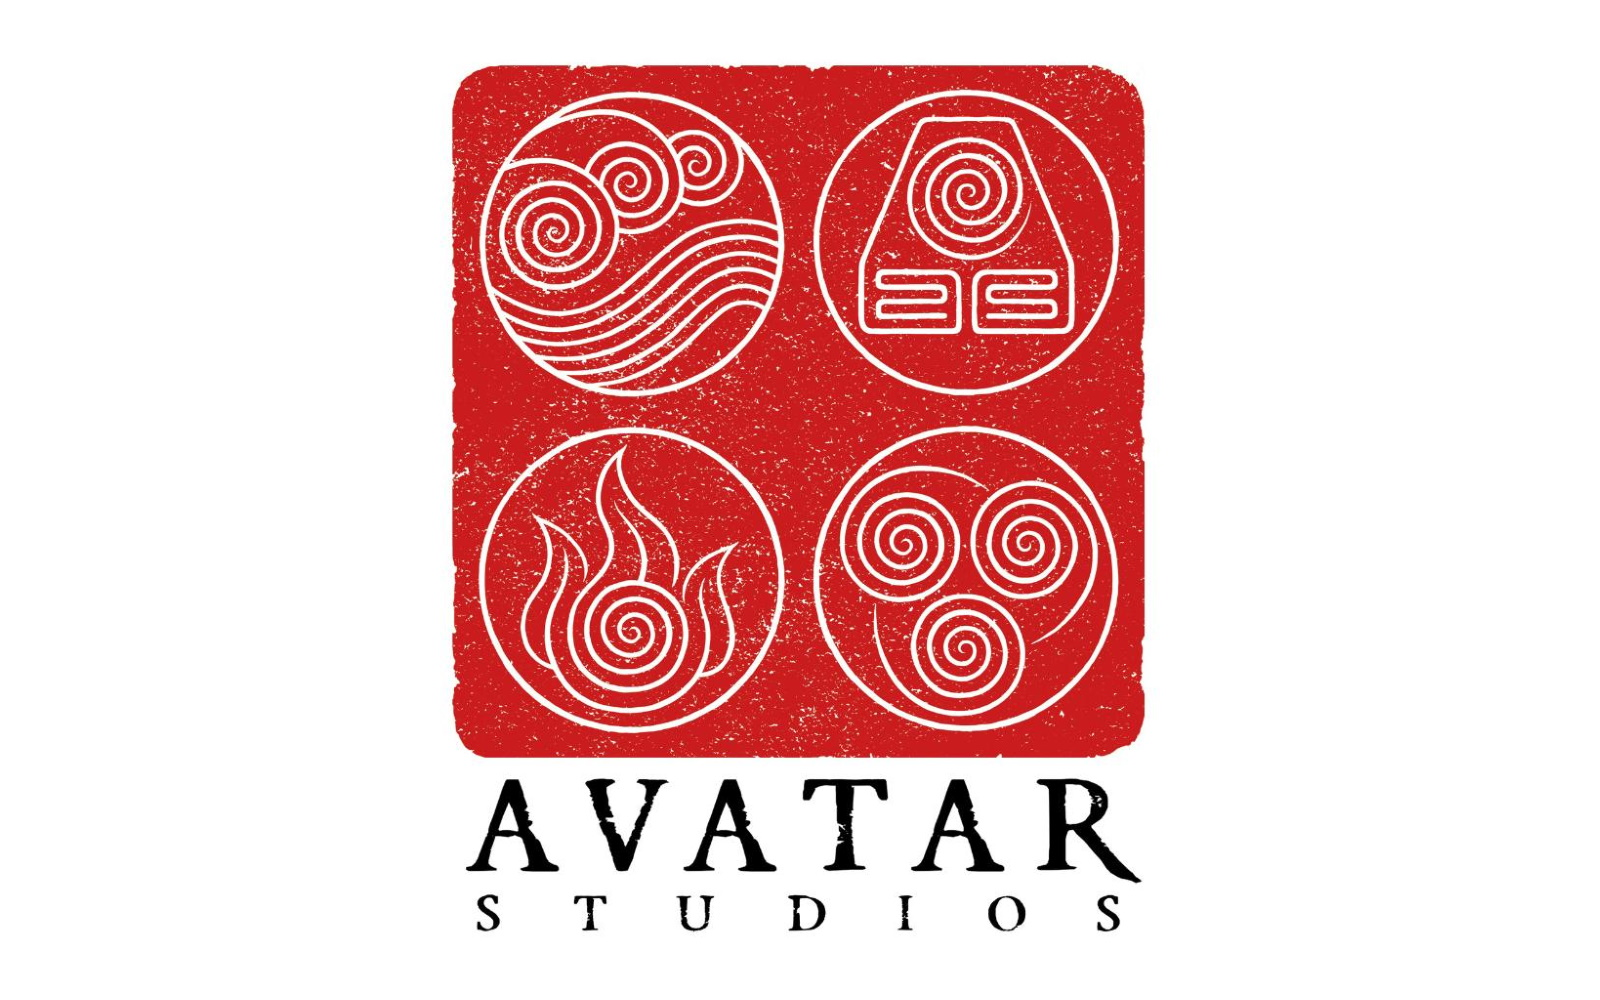 Nickelodeon Launch Avatar Studios. New Adventures Planned For The Brand